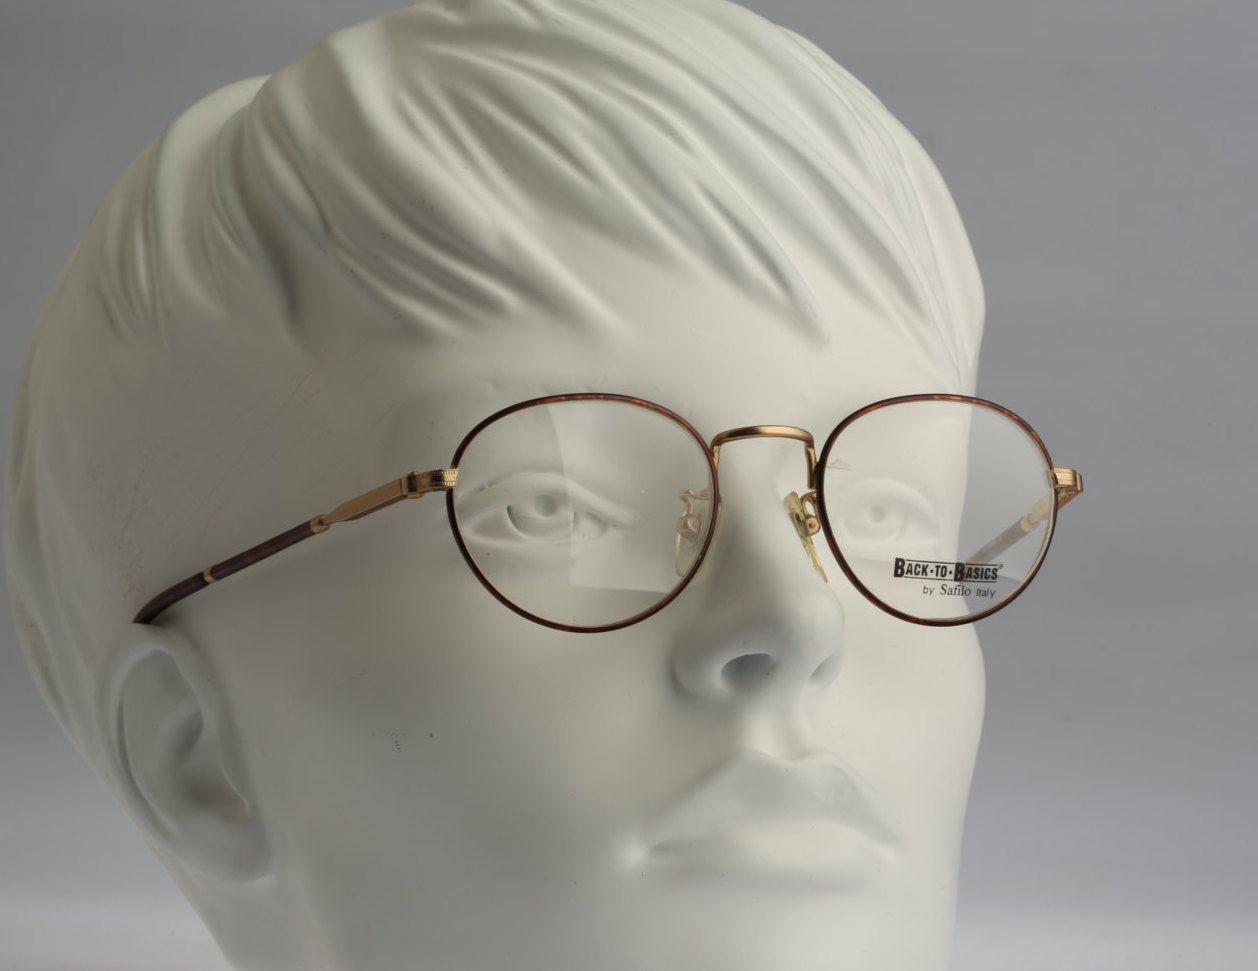 Back To Basics By Safilo btb6755n / Vintage eyeglasses / NOS / 90s ...